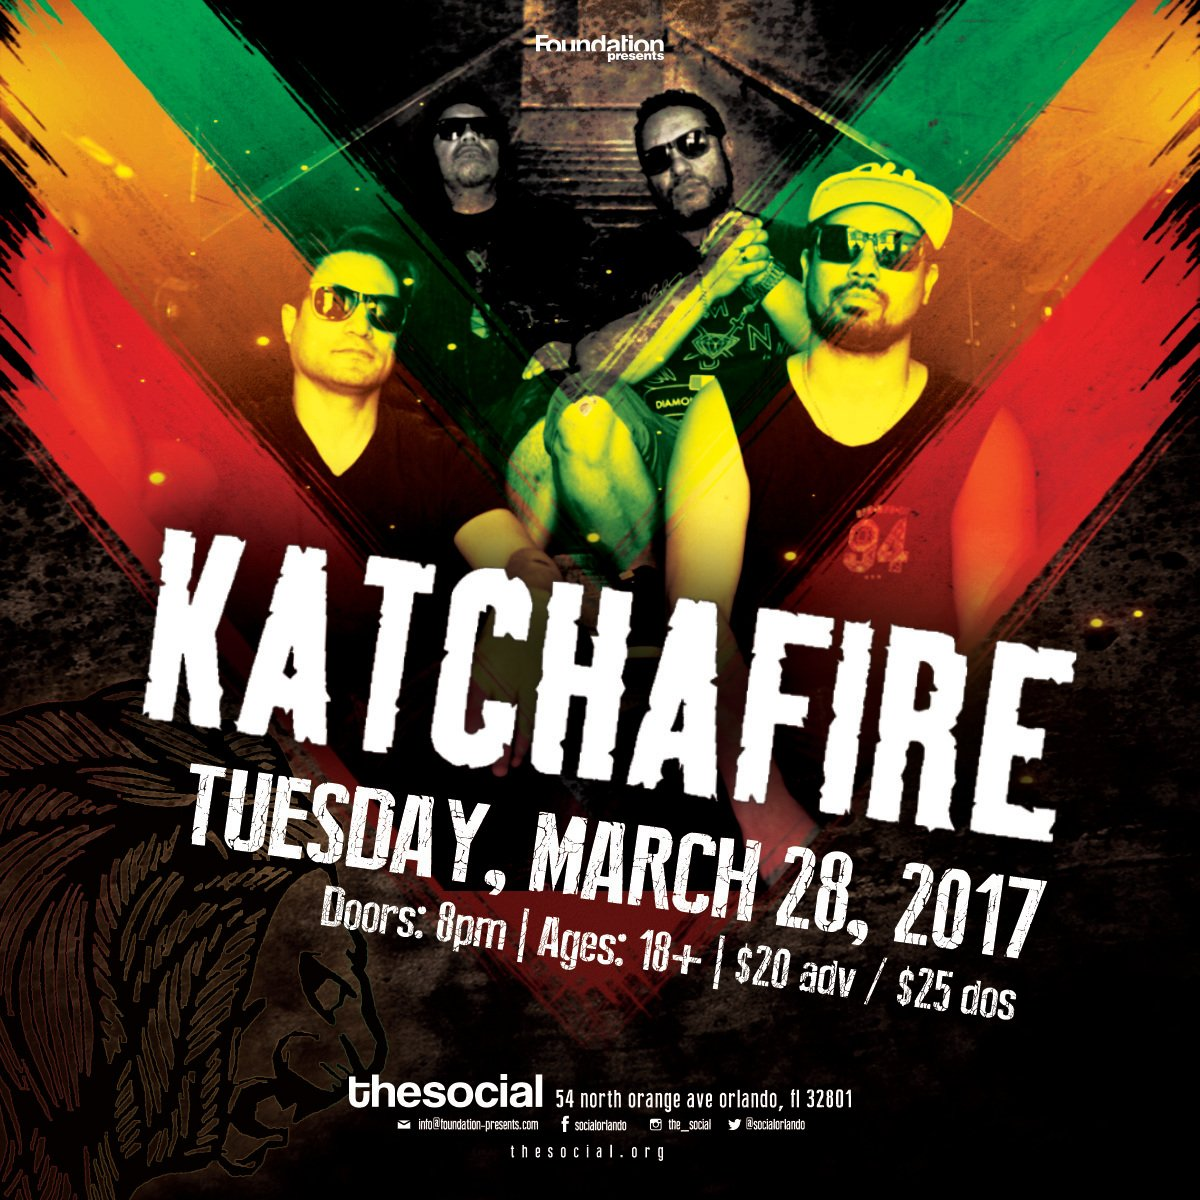 TICKET GIVEAWAY: RETWEET & WIN a pair of @katchafire tickets TOMORROW night at The Social! https://t.co/iyGBHXom2g https://t.co/HRRv69sIHs